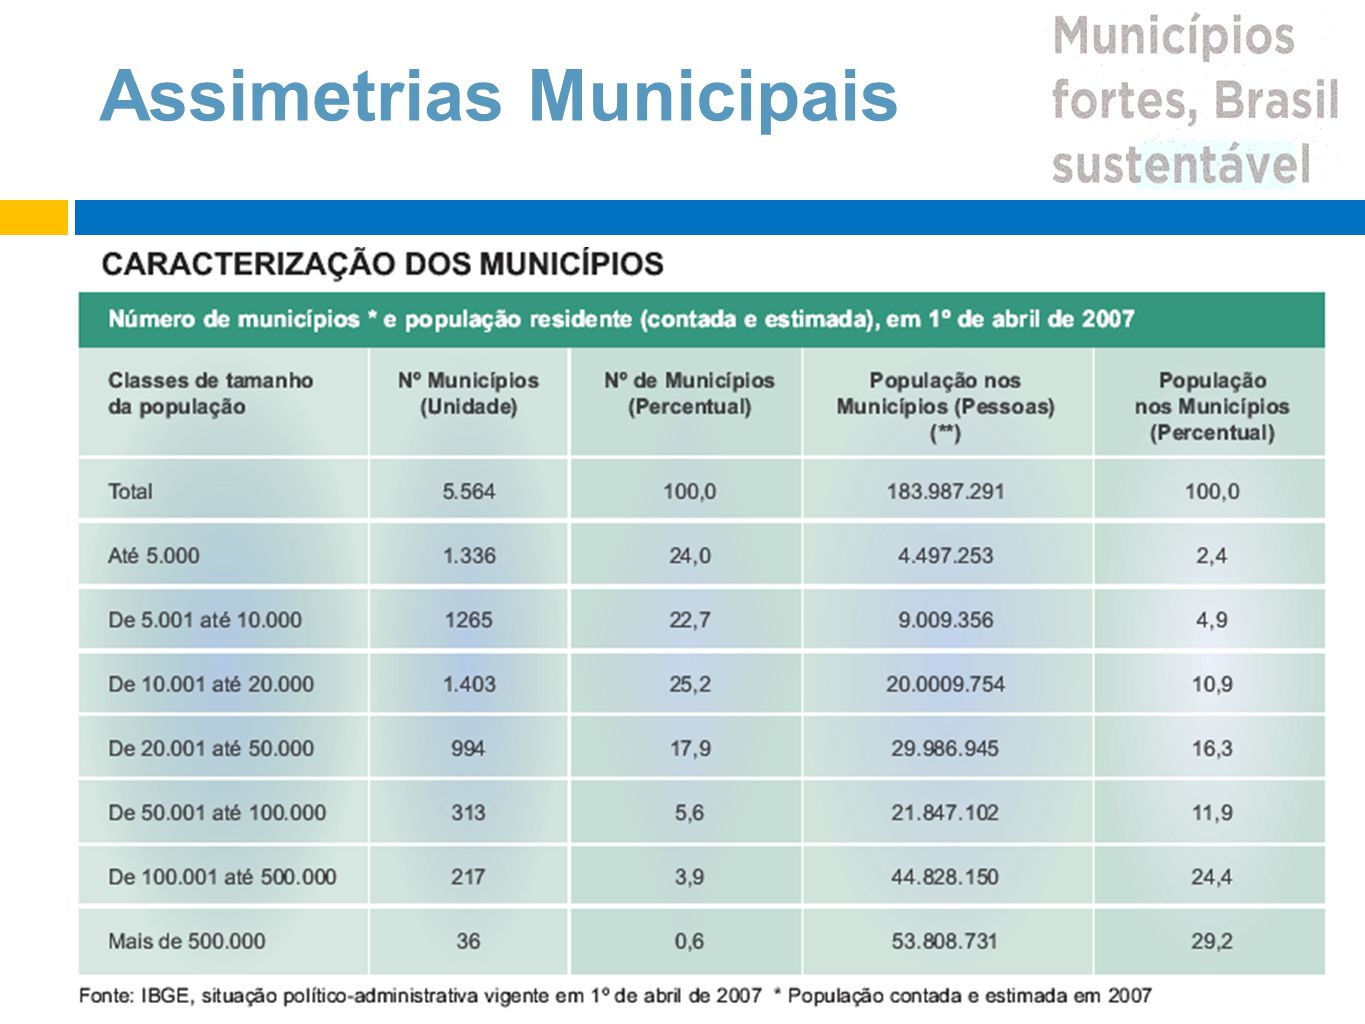 Assimetrias Municipais